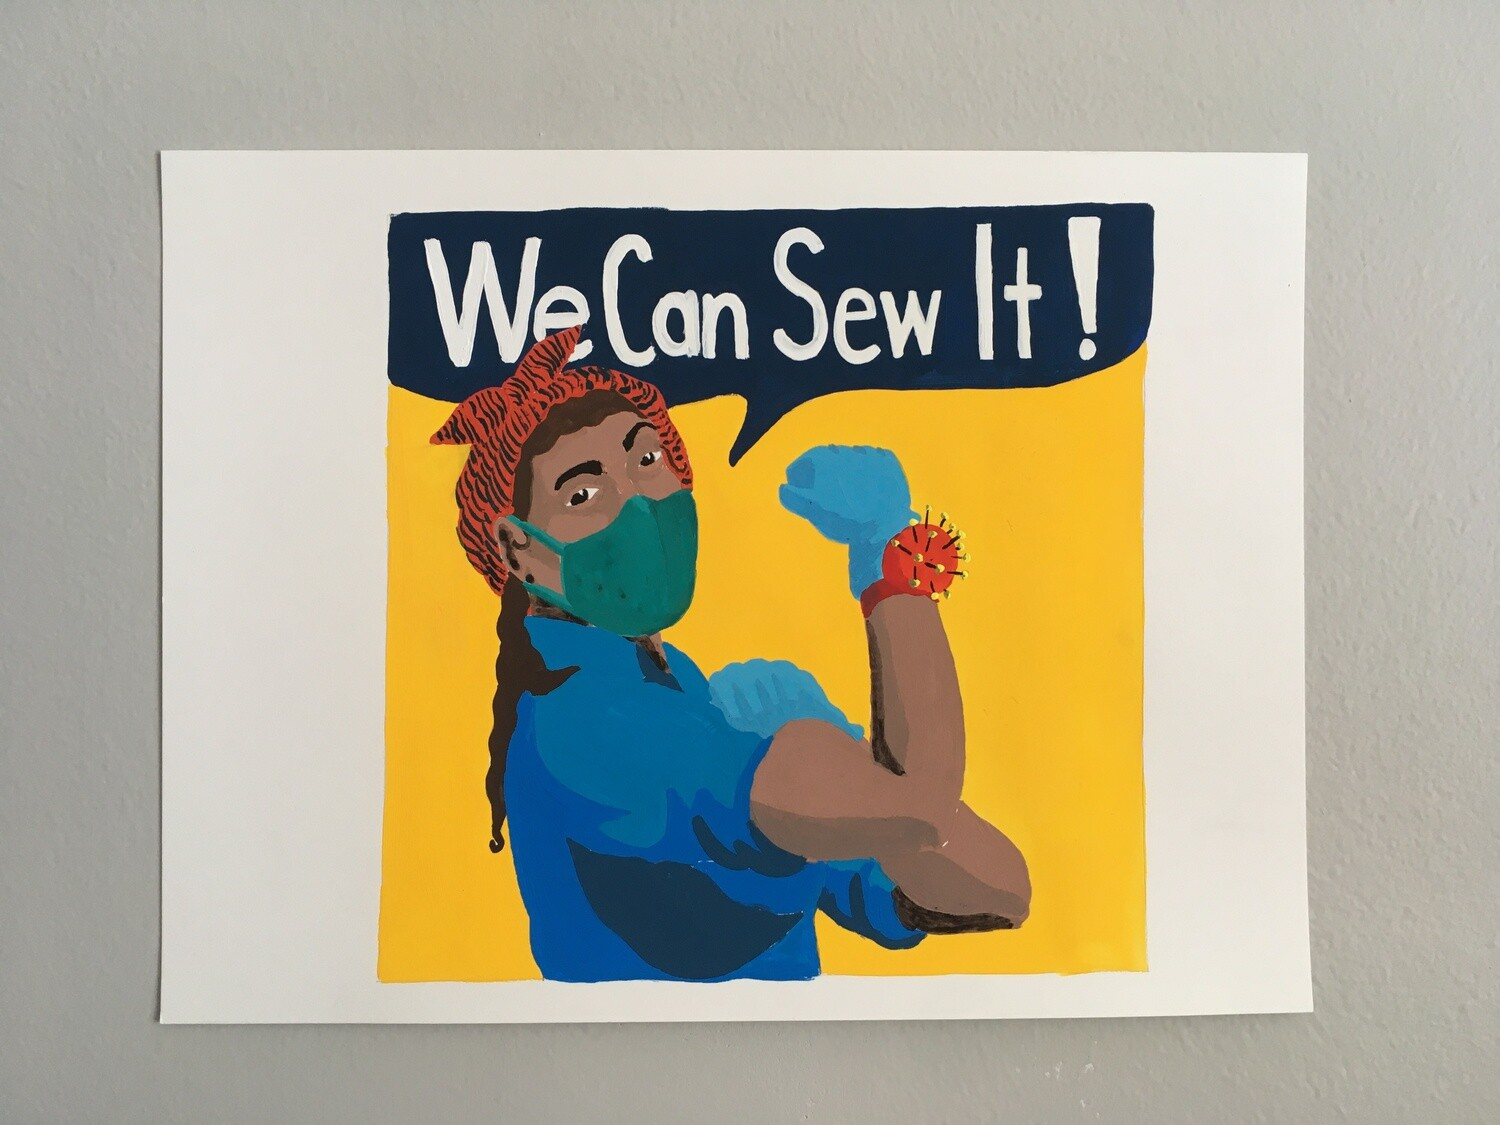 We Can Sew It!